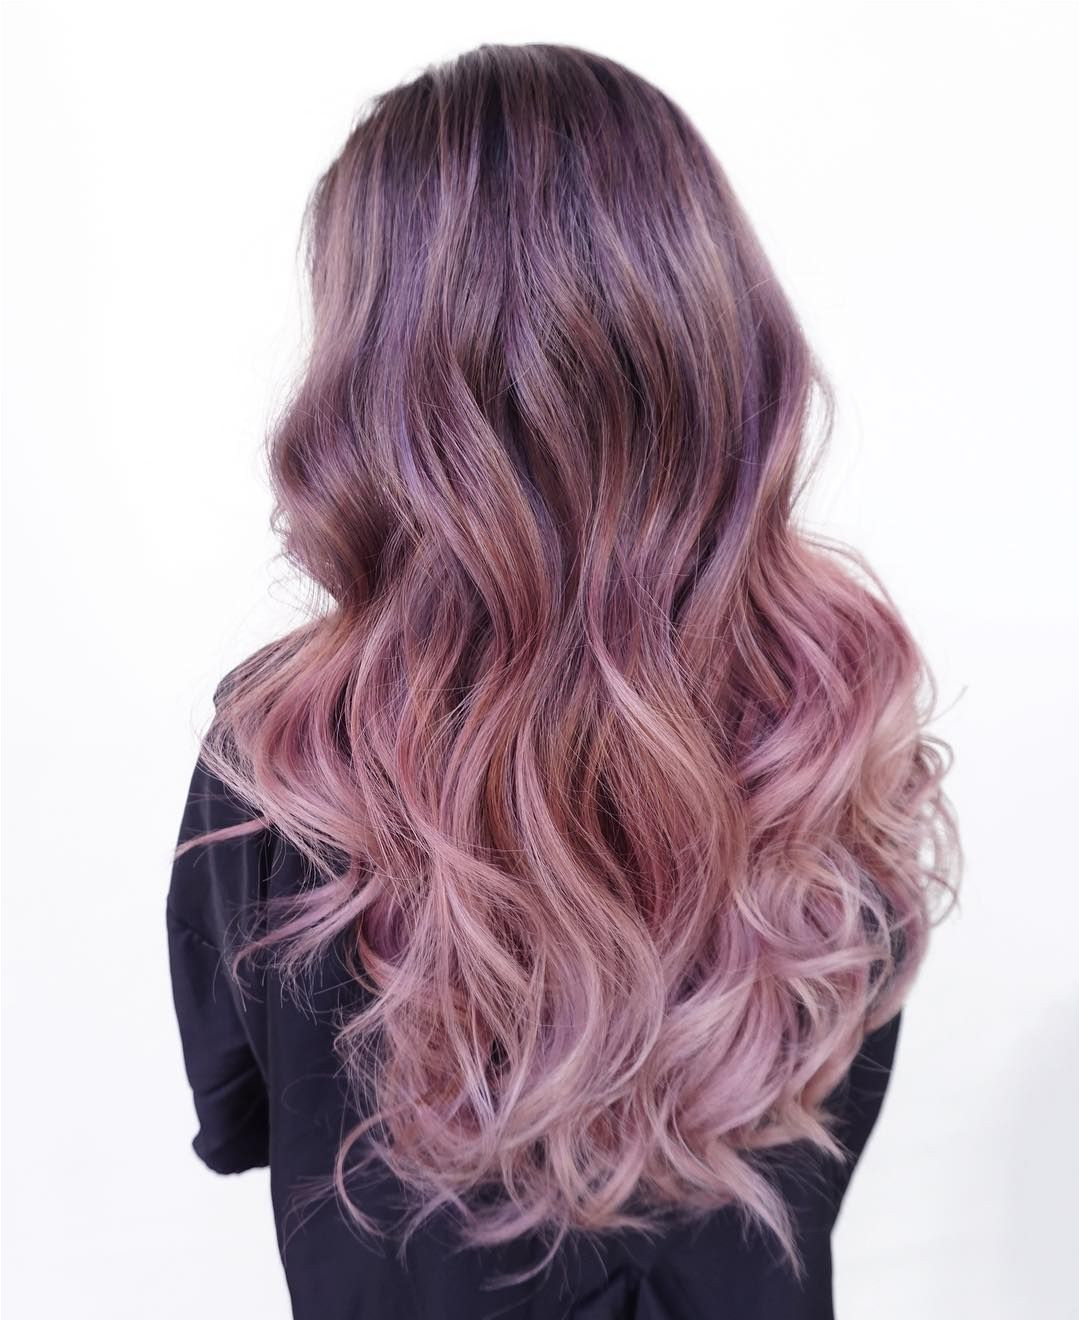 Trending Haircuts Style Nails Cool Hair Color Bad Hair The Colour Color Inspiration Hair Coloring Wig ment Hair Toupee Hair Dye